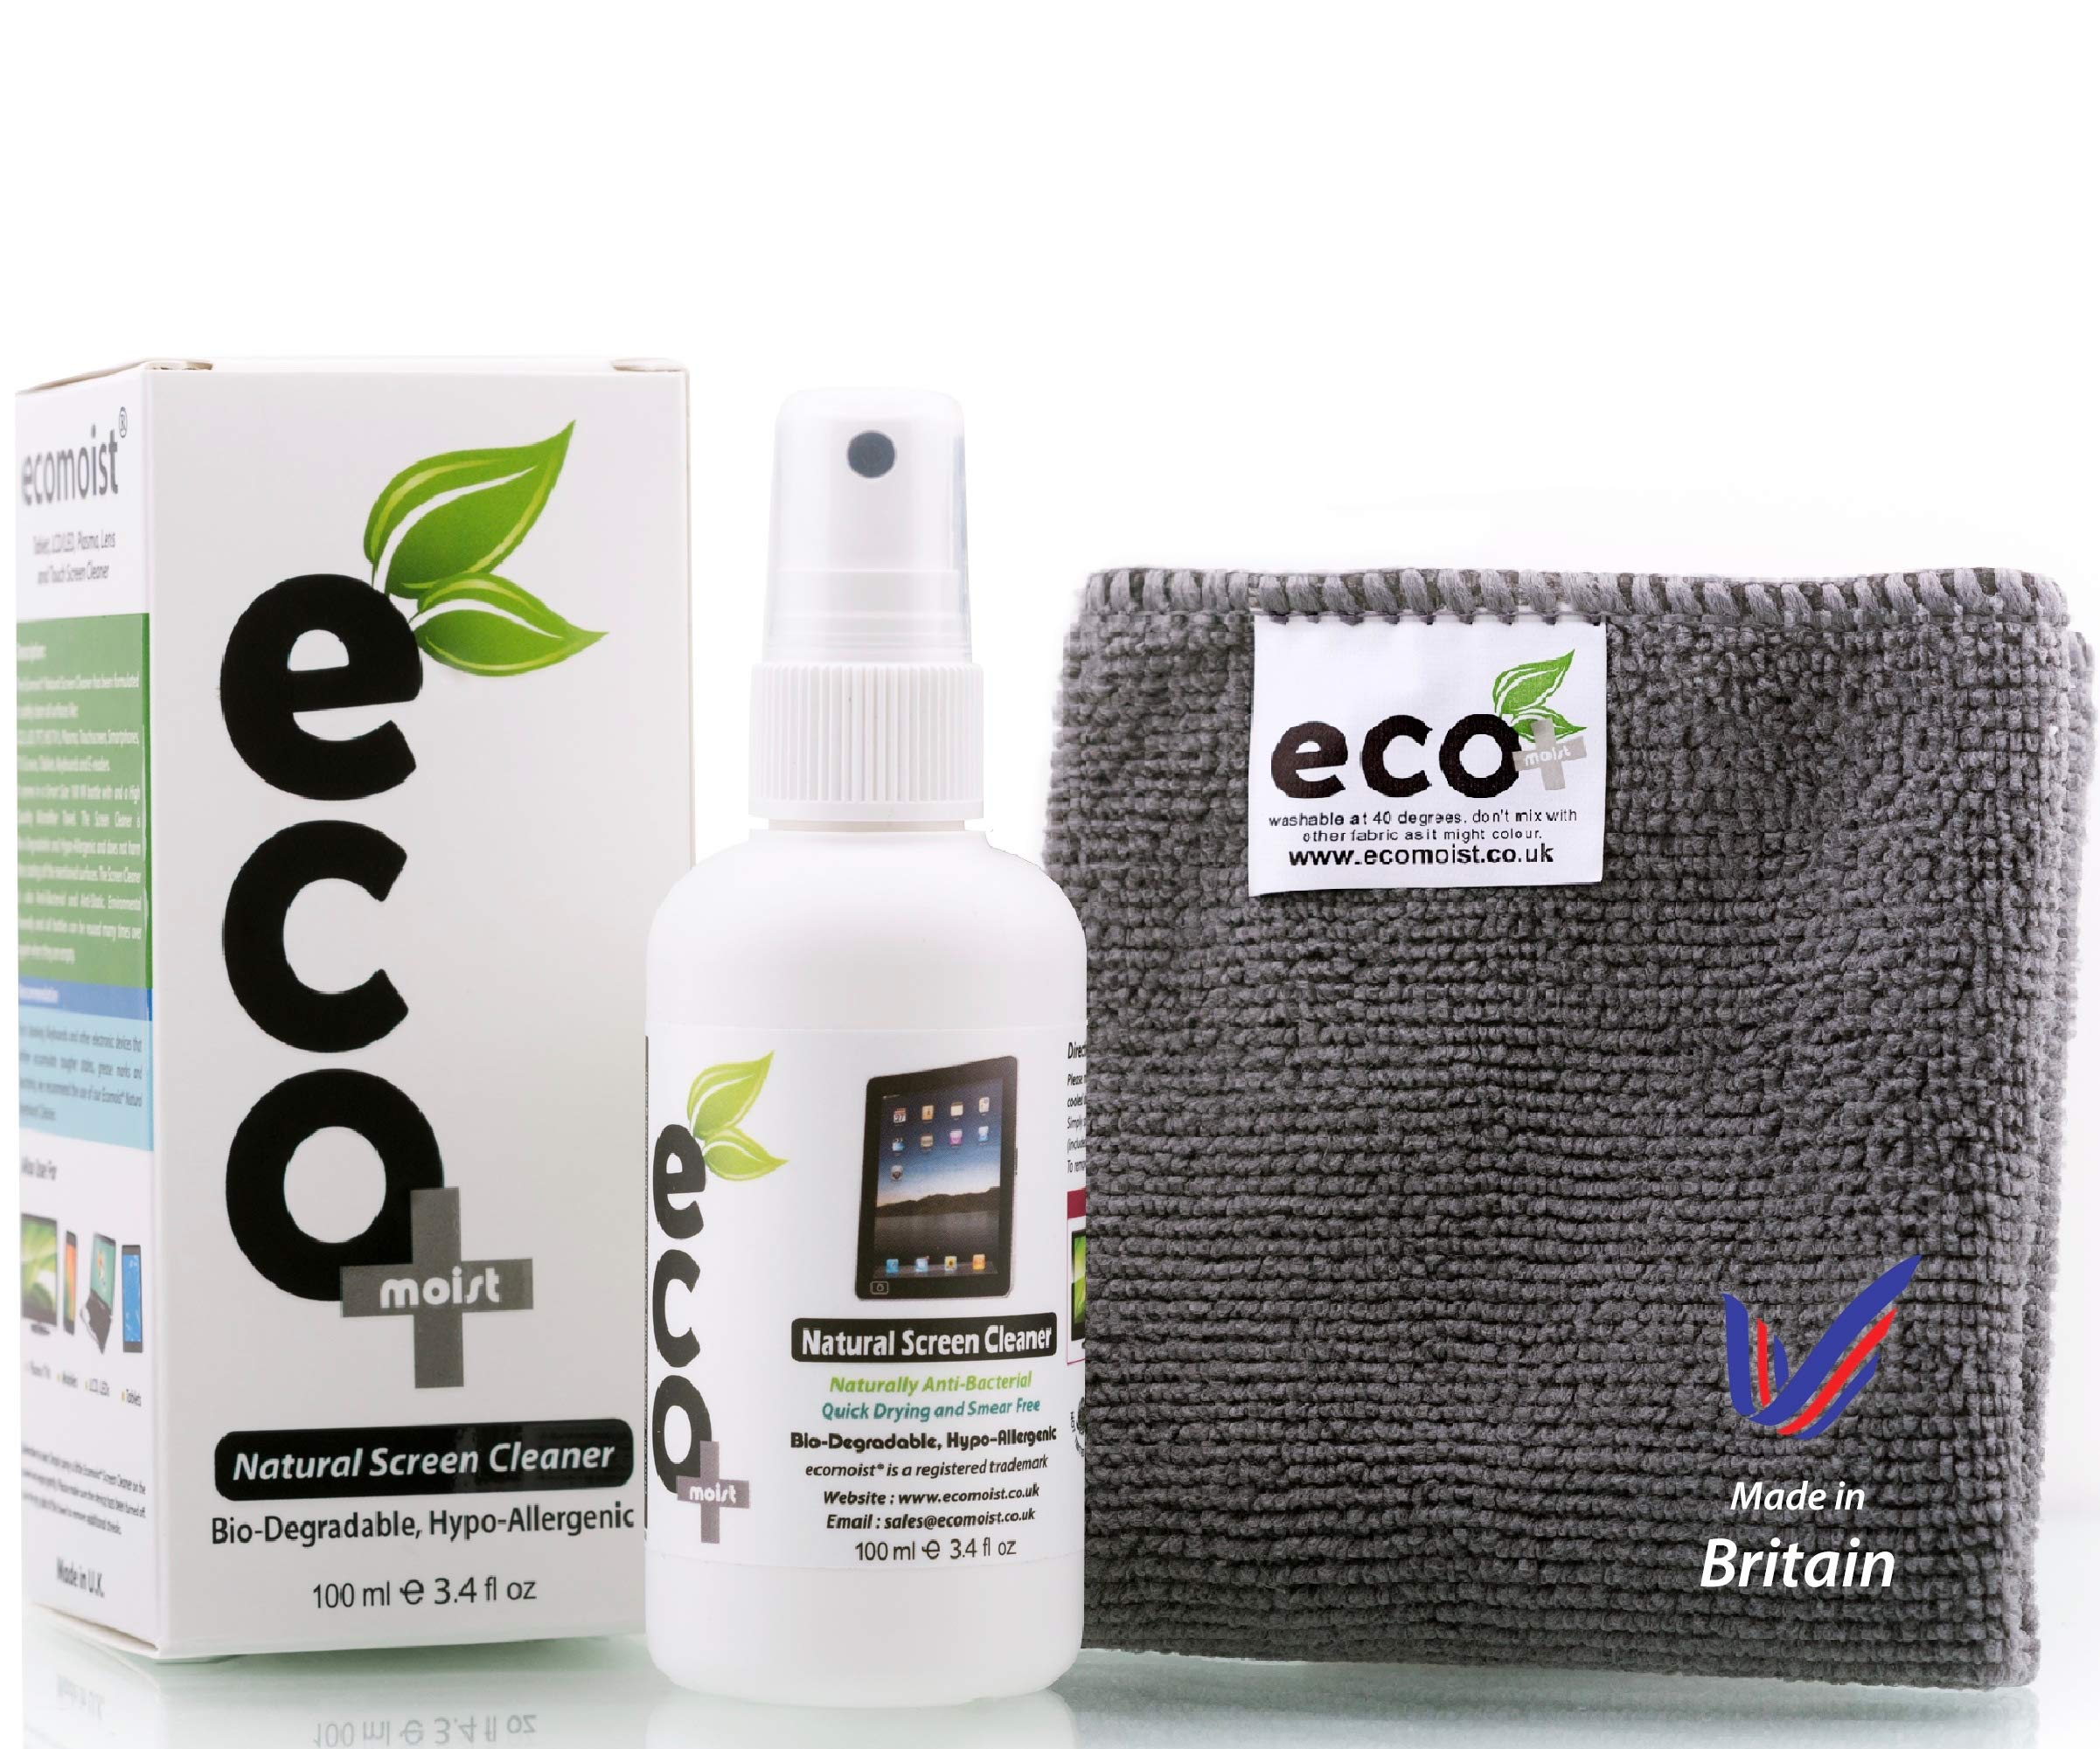 Ecomoist Natural Screen Cleaner 100ml with Fine Microfiber Towel product image